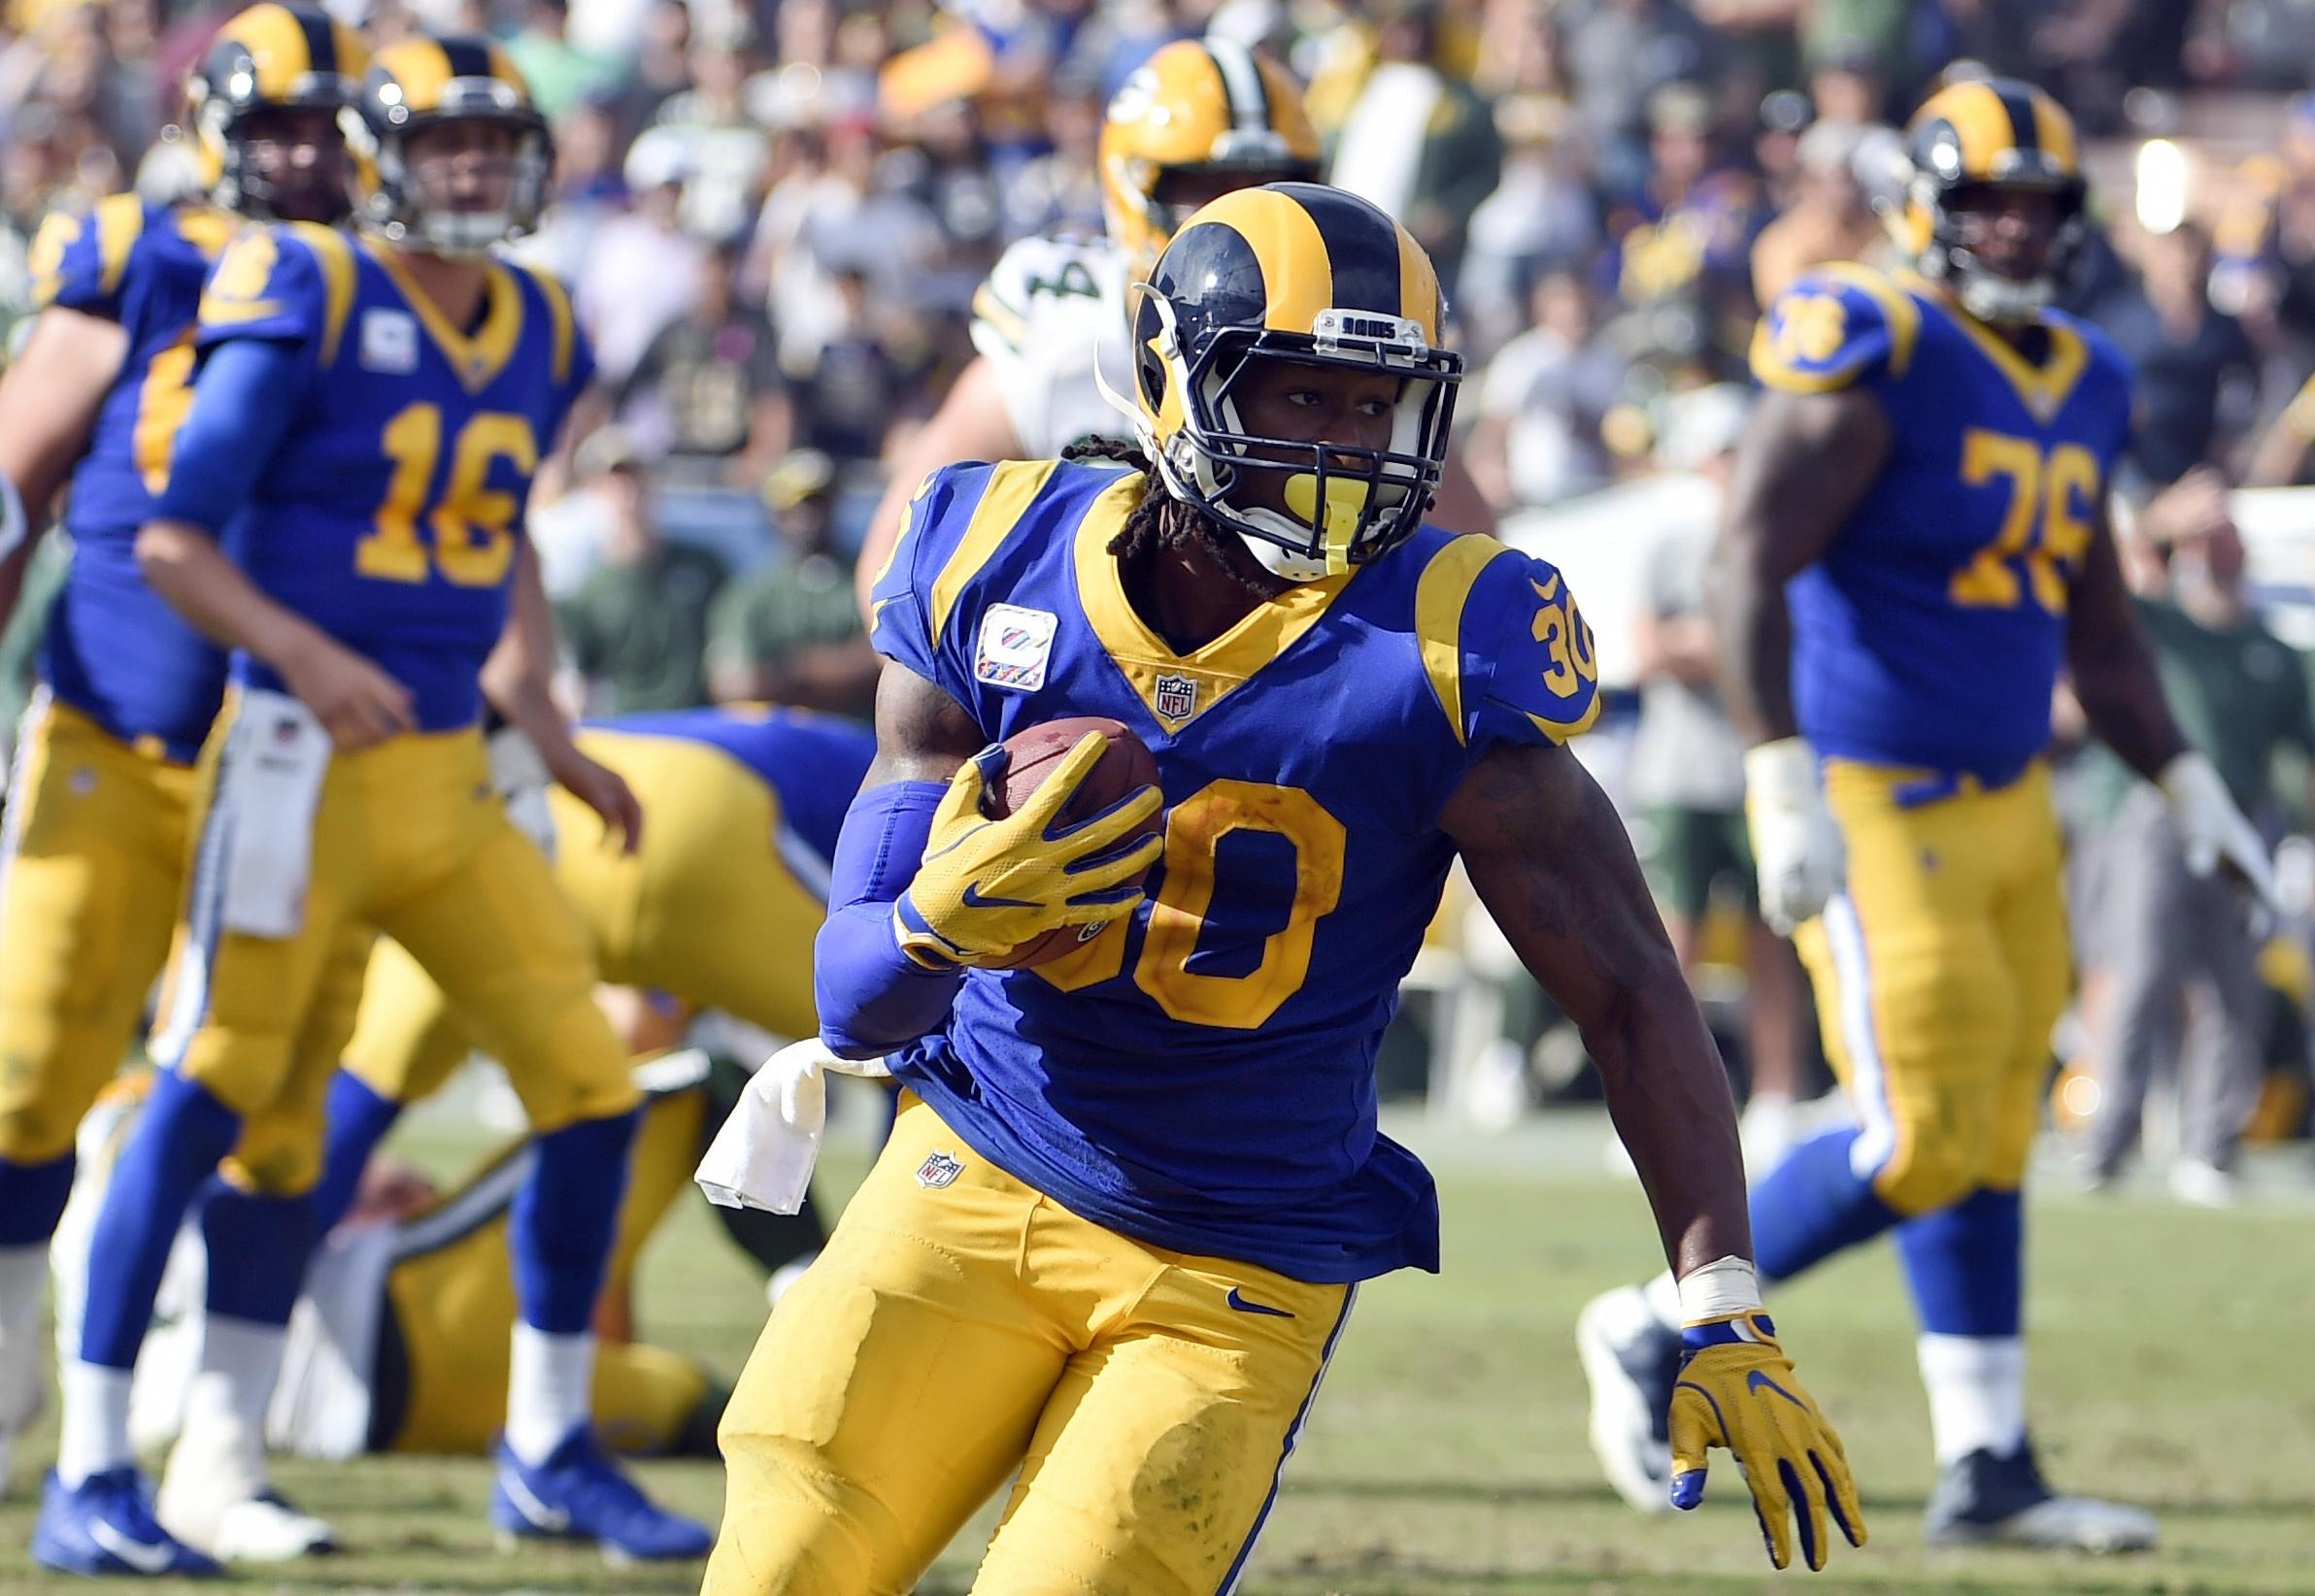 NFL s running renaissance highlighted by Todd Gurley s MVP look ... 877197be9